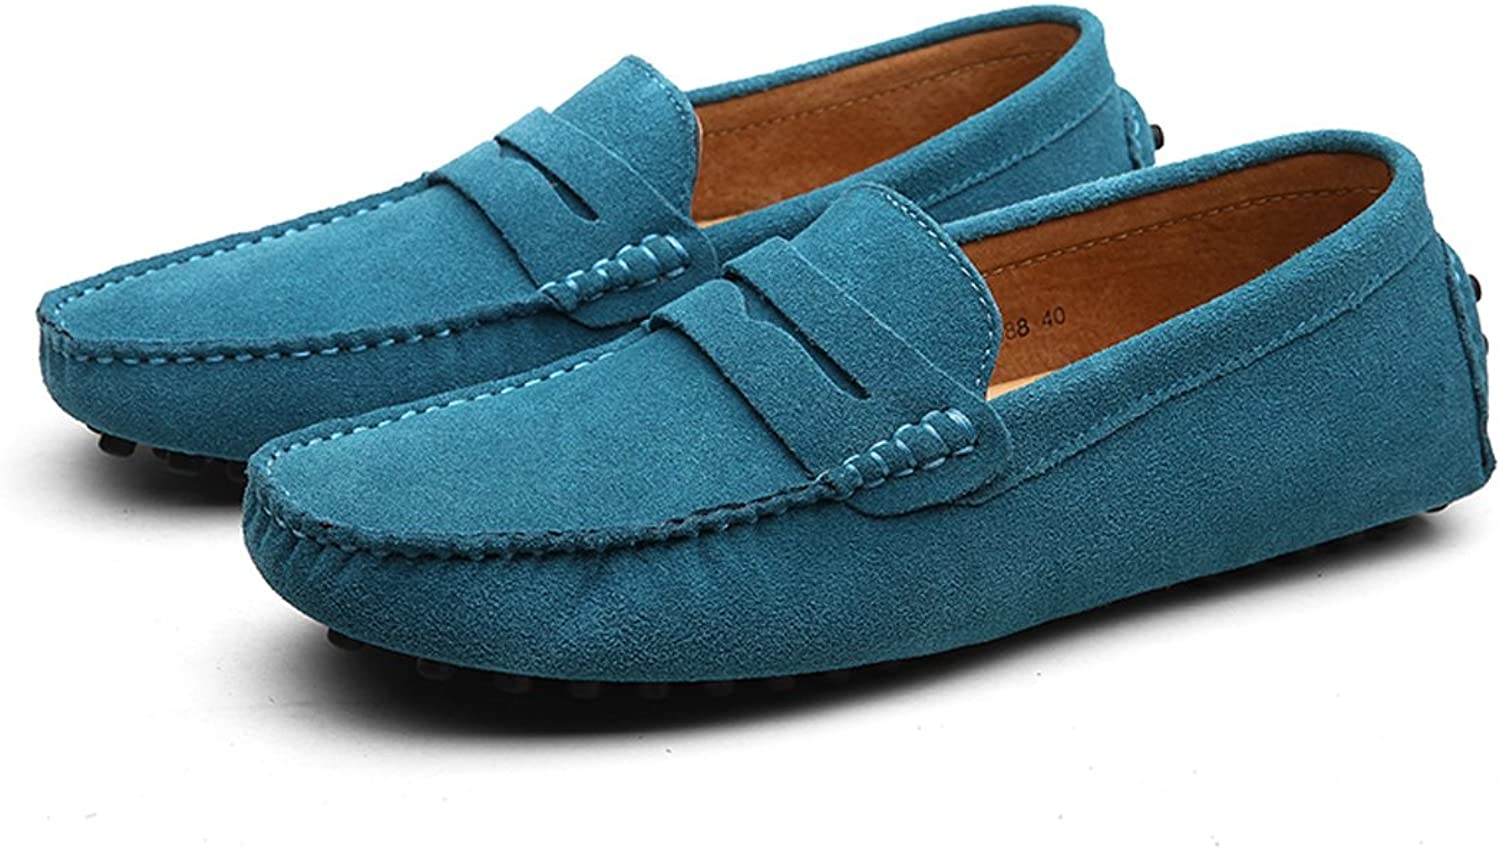 Suzanne vega Men's Suede Penny Loafers Moccasin Driving shoes Slip On Flats Boat shoes